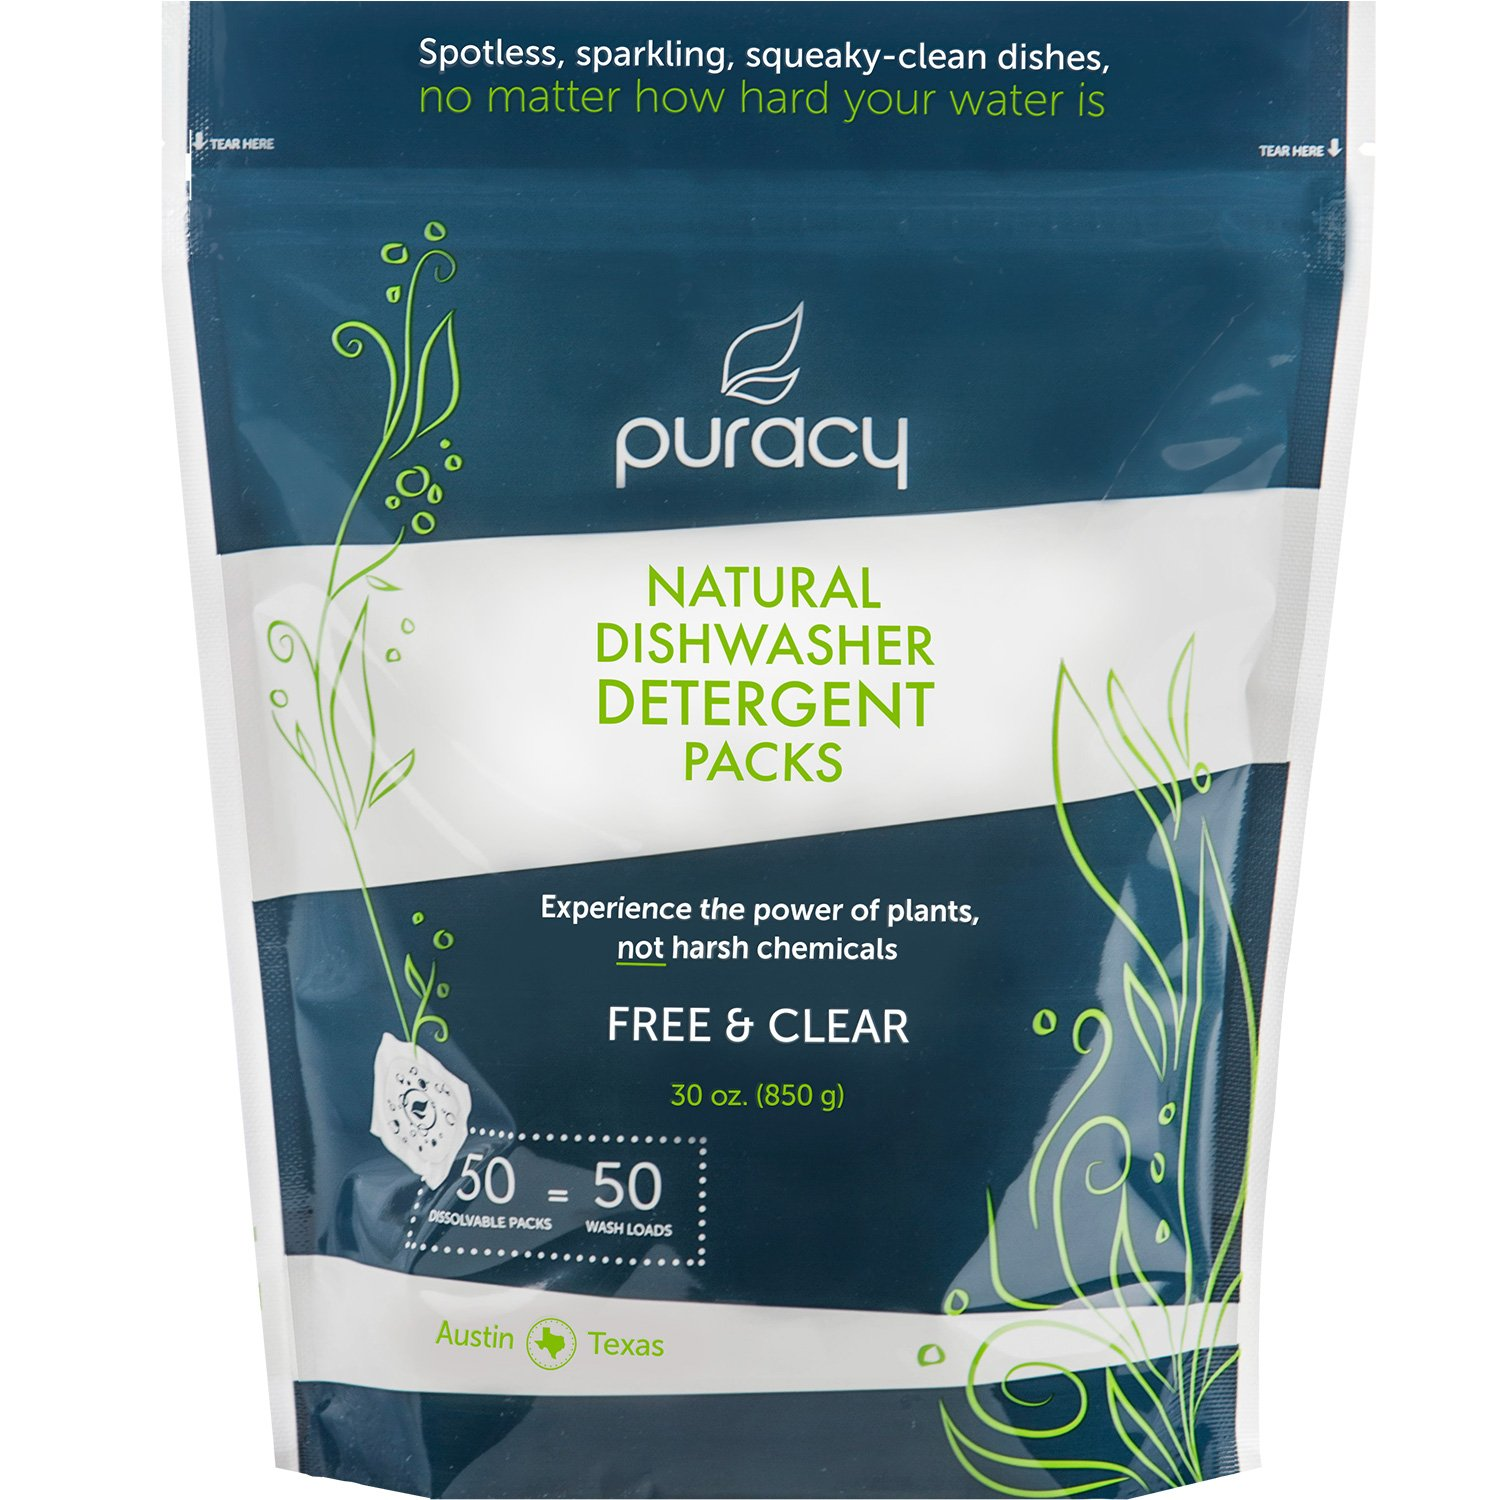 Puracy Natural Dishwasher Detergent Packs, Enzyme-Powered Auto Dish Tabs, Free & Clear, 50 Count